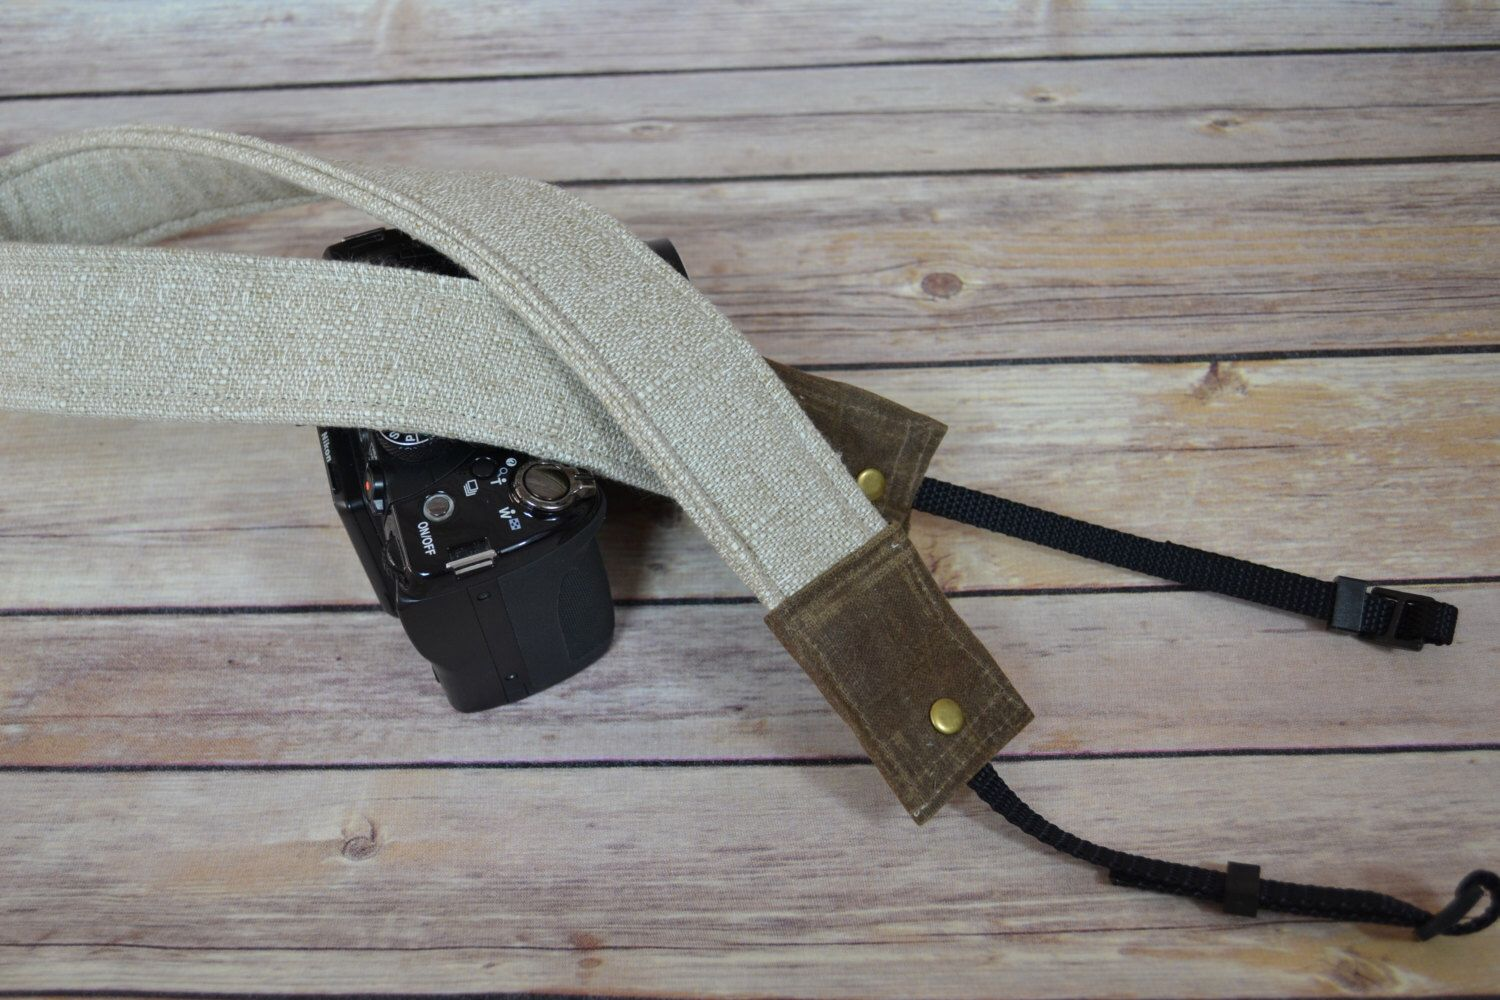 French Linen and Waxed Canvas Camera Strap, narrow / padded with foam /  Darby Mack / dslr gear / photography / Stone / natural minimalist by DarbyMack on Etsy https://www.etsy.com/listing/180154423/french-linen-and-waxed-canvas-camera